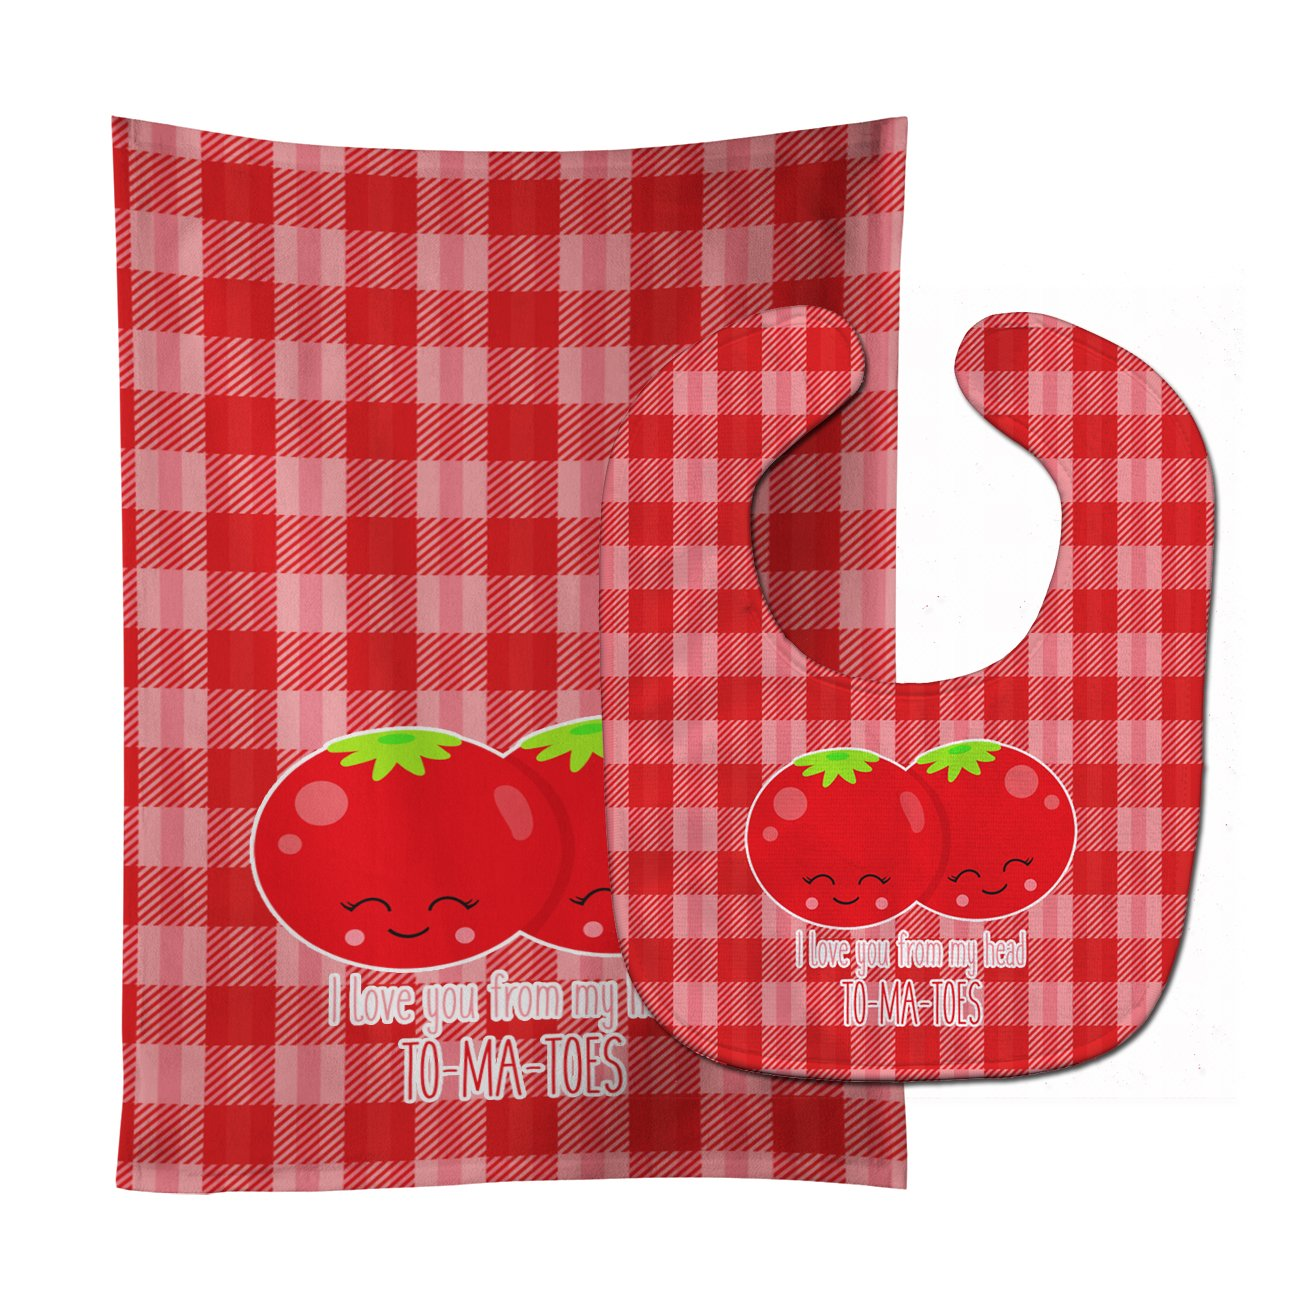 Caroline's Treasures I Love You From My Head To-Ma-Toes Baby Bib & Burp Cloth, Multicolor, Large